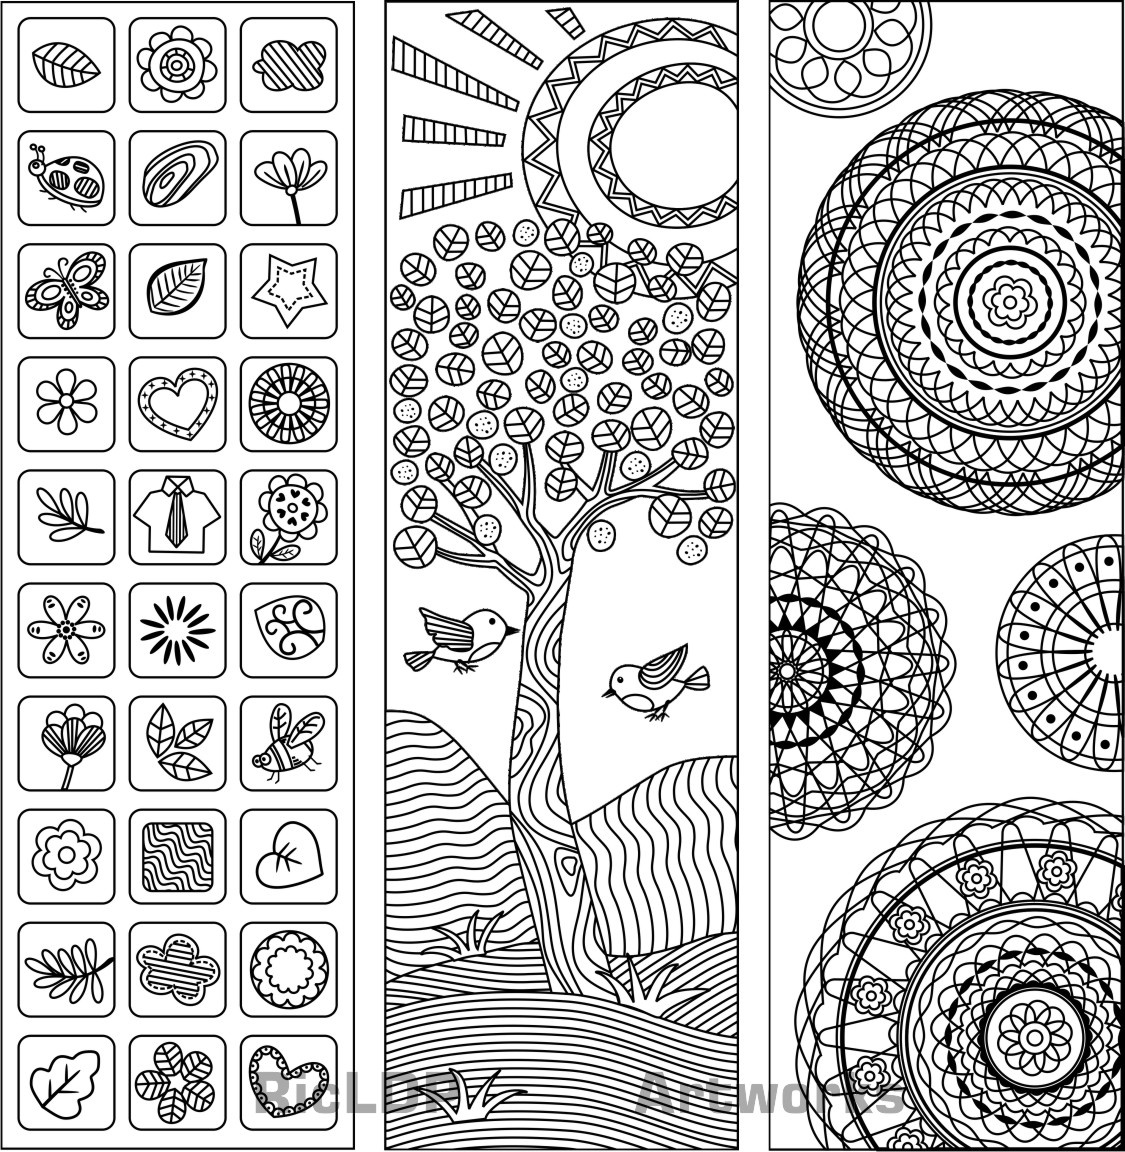 picture about Free Printable Bookmarks to Color Pdf identified as A few Coloring Bookmarks - RicLDP Artworks